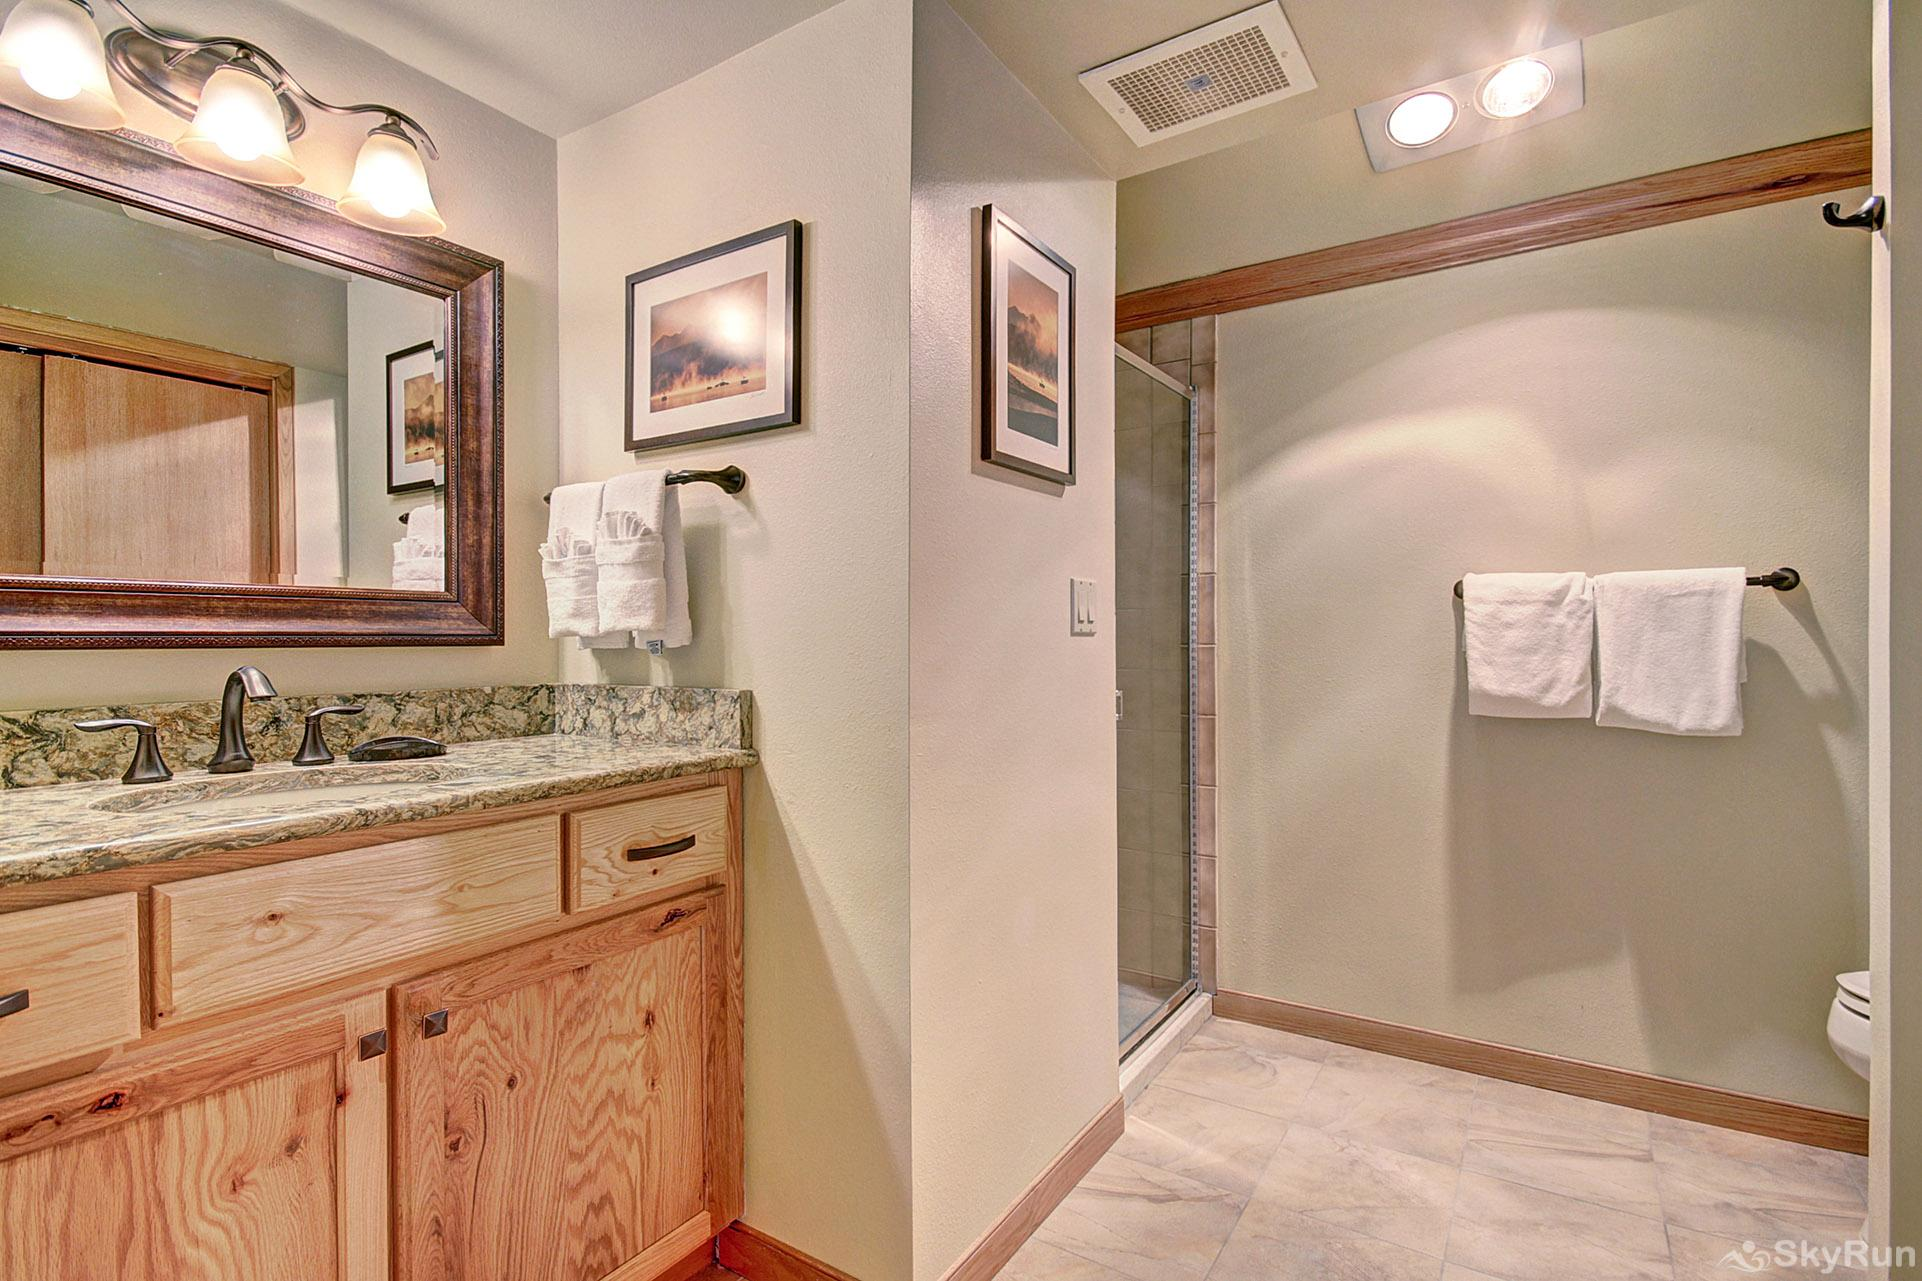 413 Ski Run En-suite Bathroom